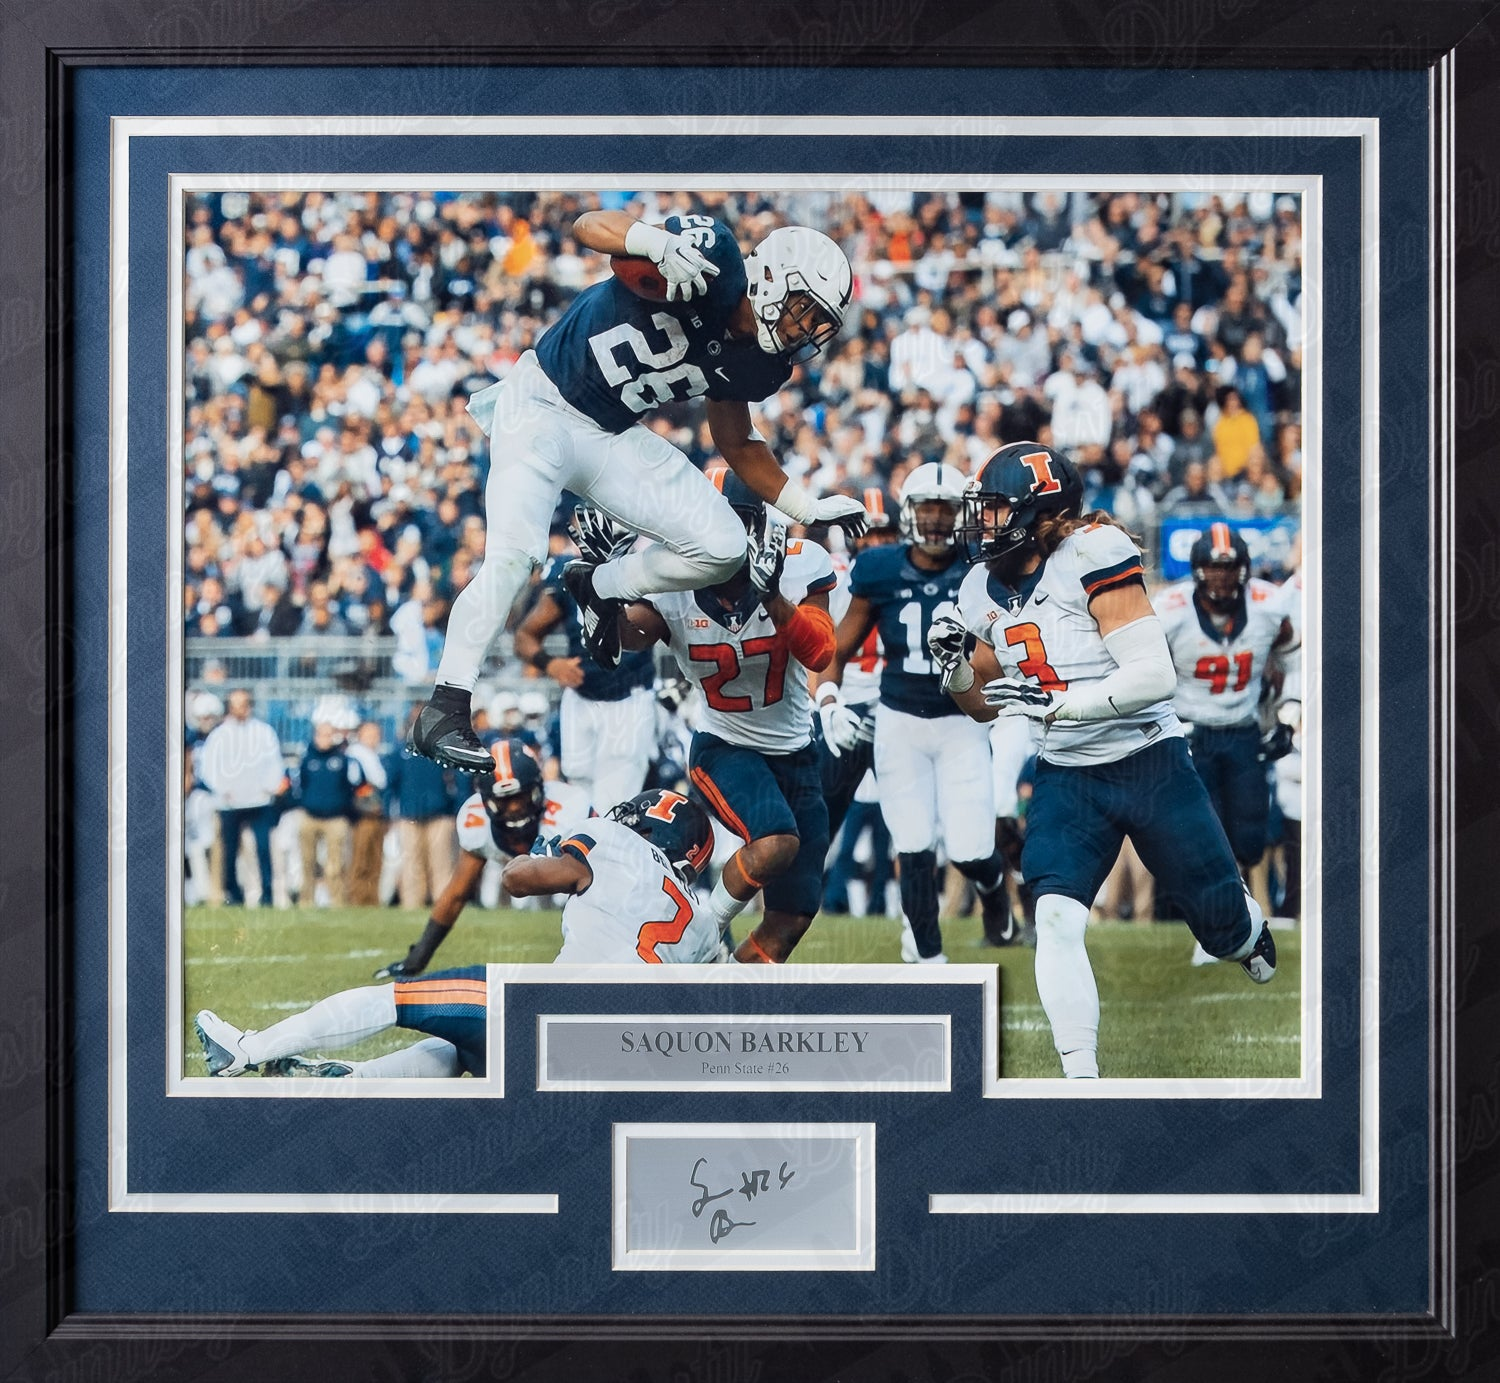 100% authentic 1a305 b7bd7 Saquon Barkley Penn State Nittany Lions College Football Framed & Matted  Photo with Engraved Autograph